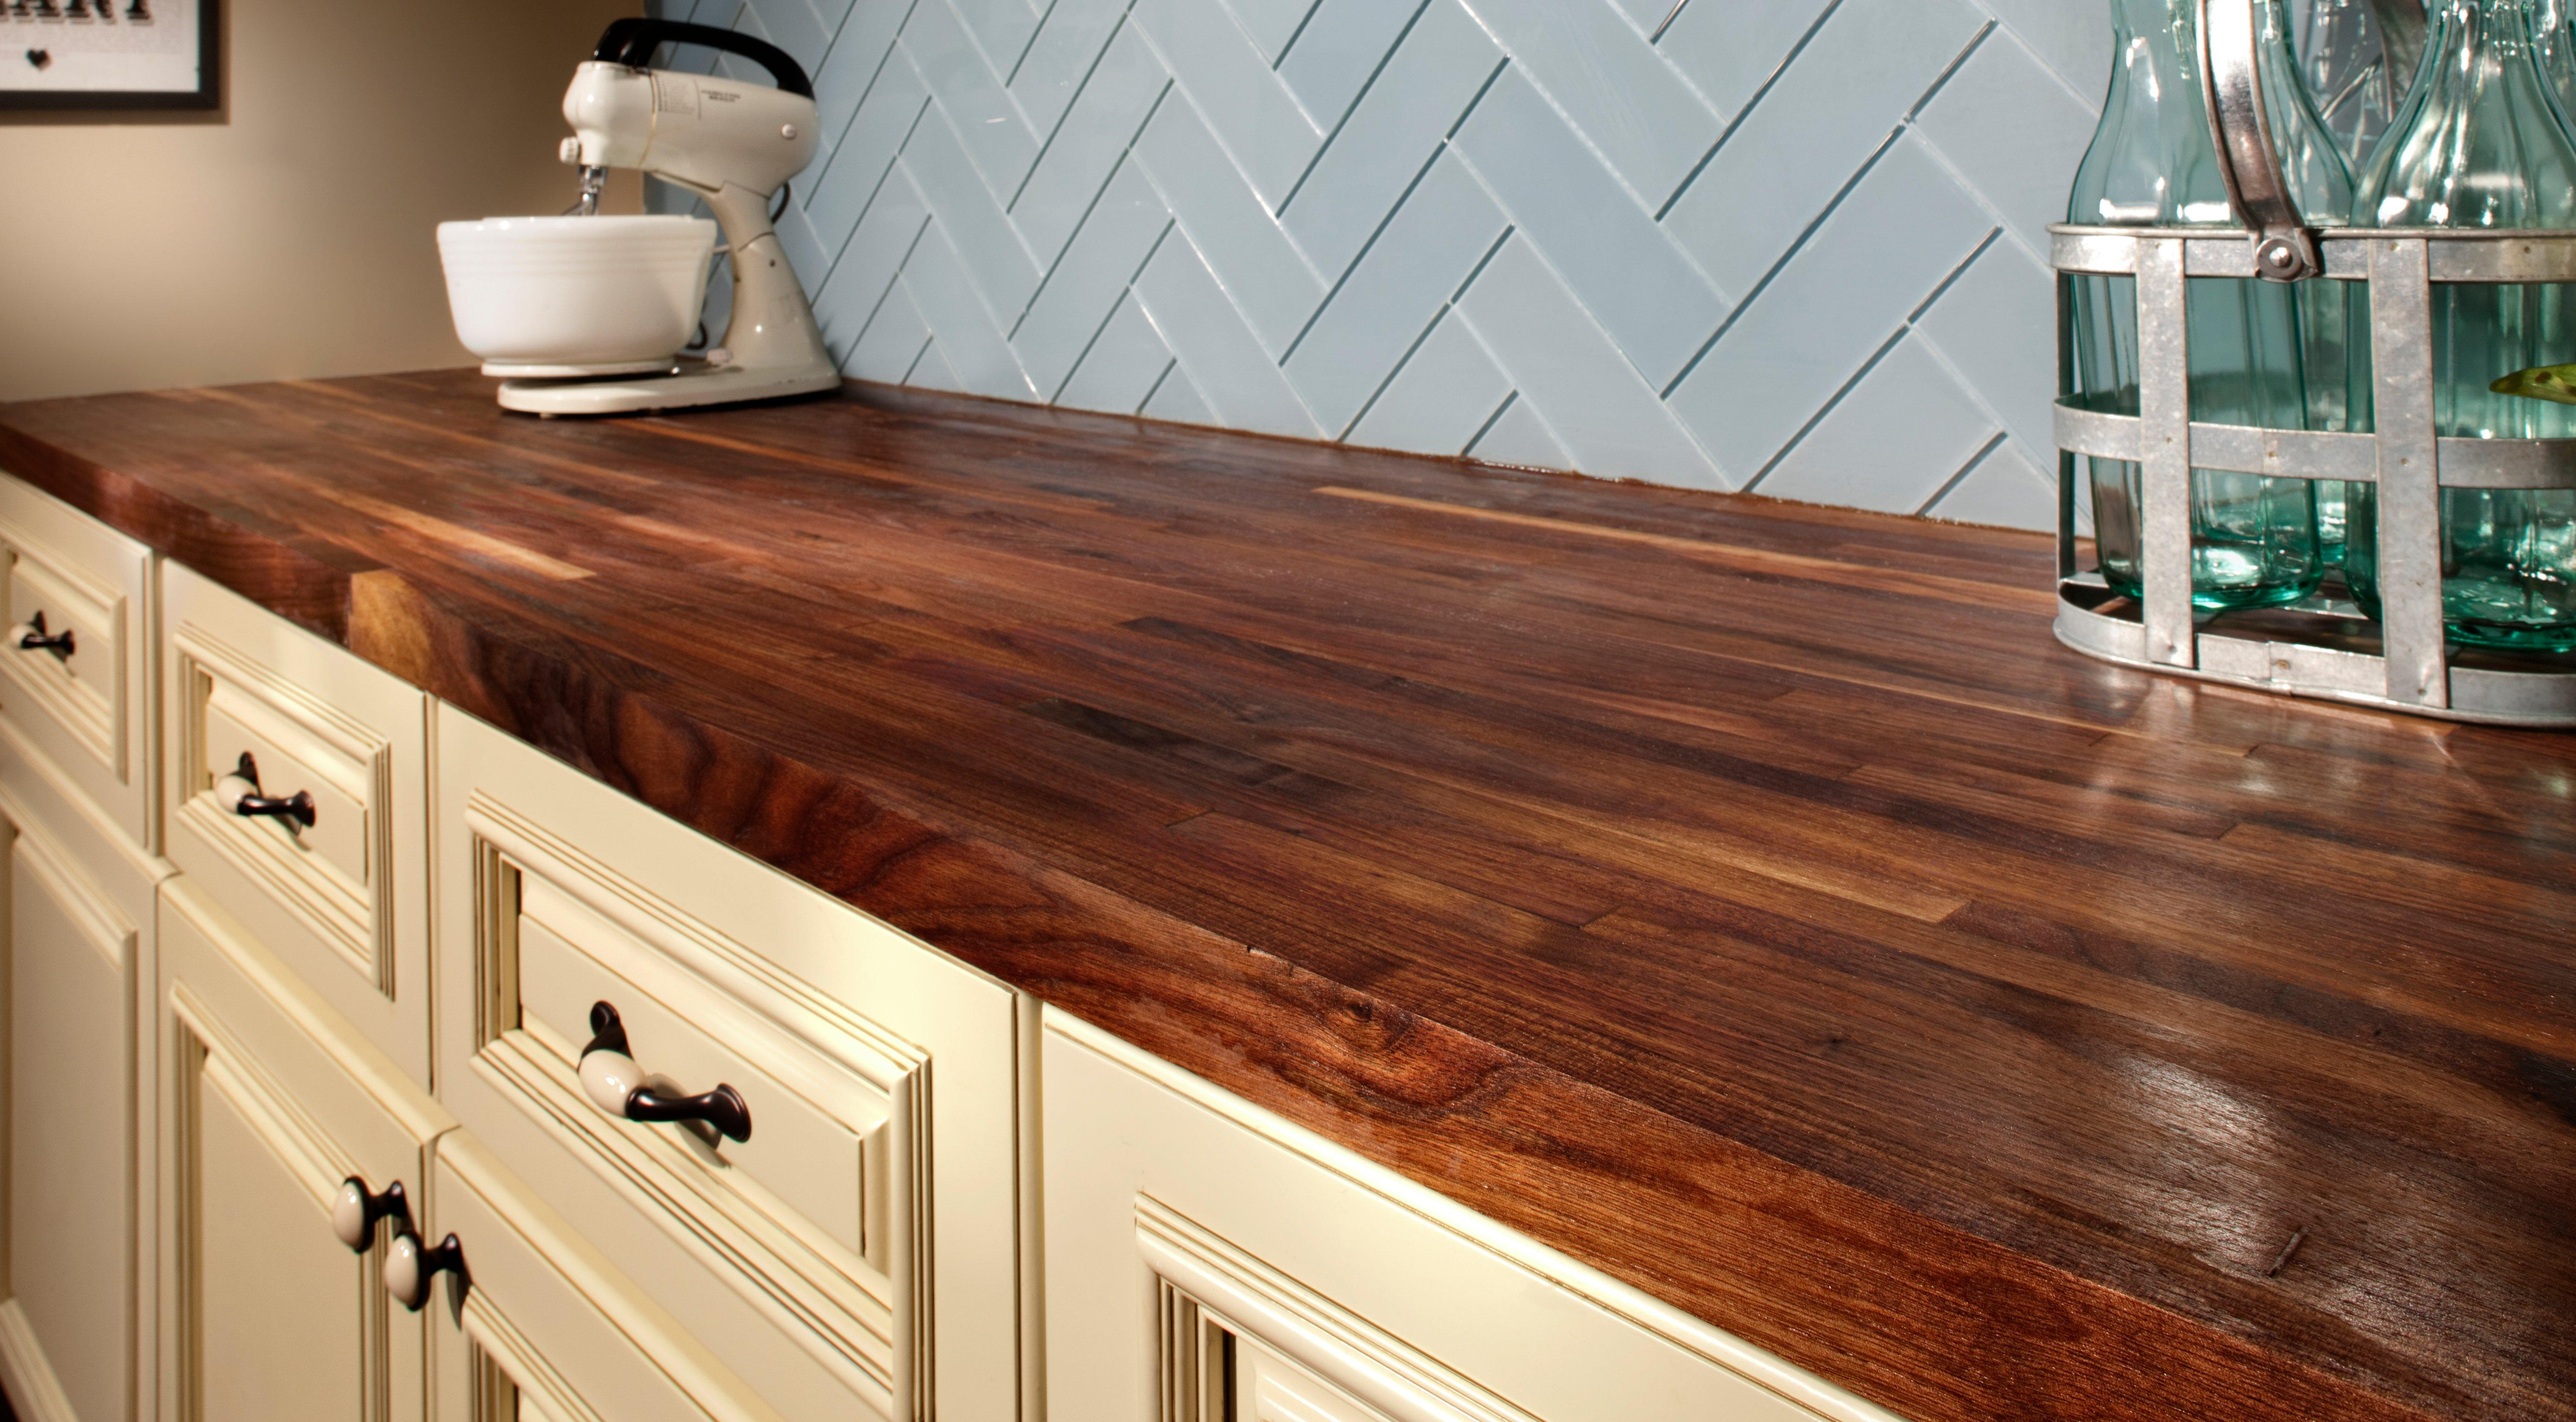 Keep Butcher Block Countertops From Drying Or Cracking With A Wood  Conditioner. The Howard Butcher Block Conditioner Is Great For Hardwoods  And Bamboo, ...